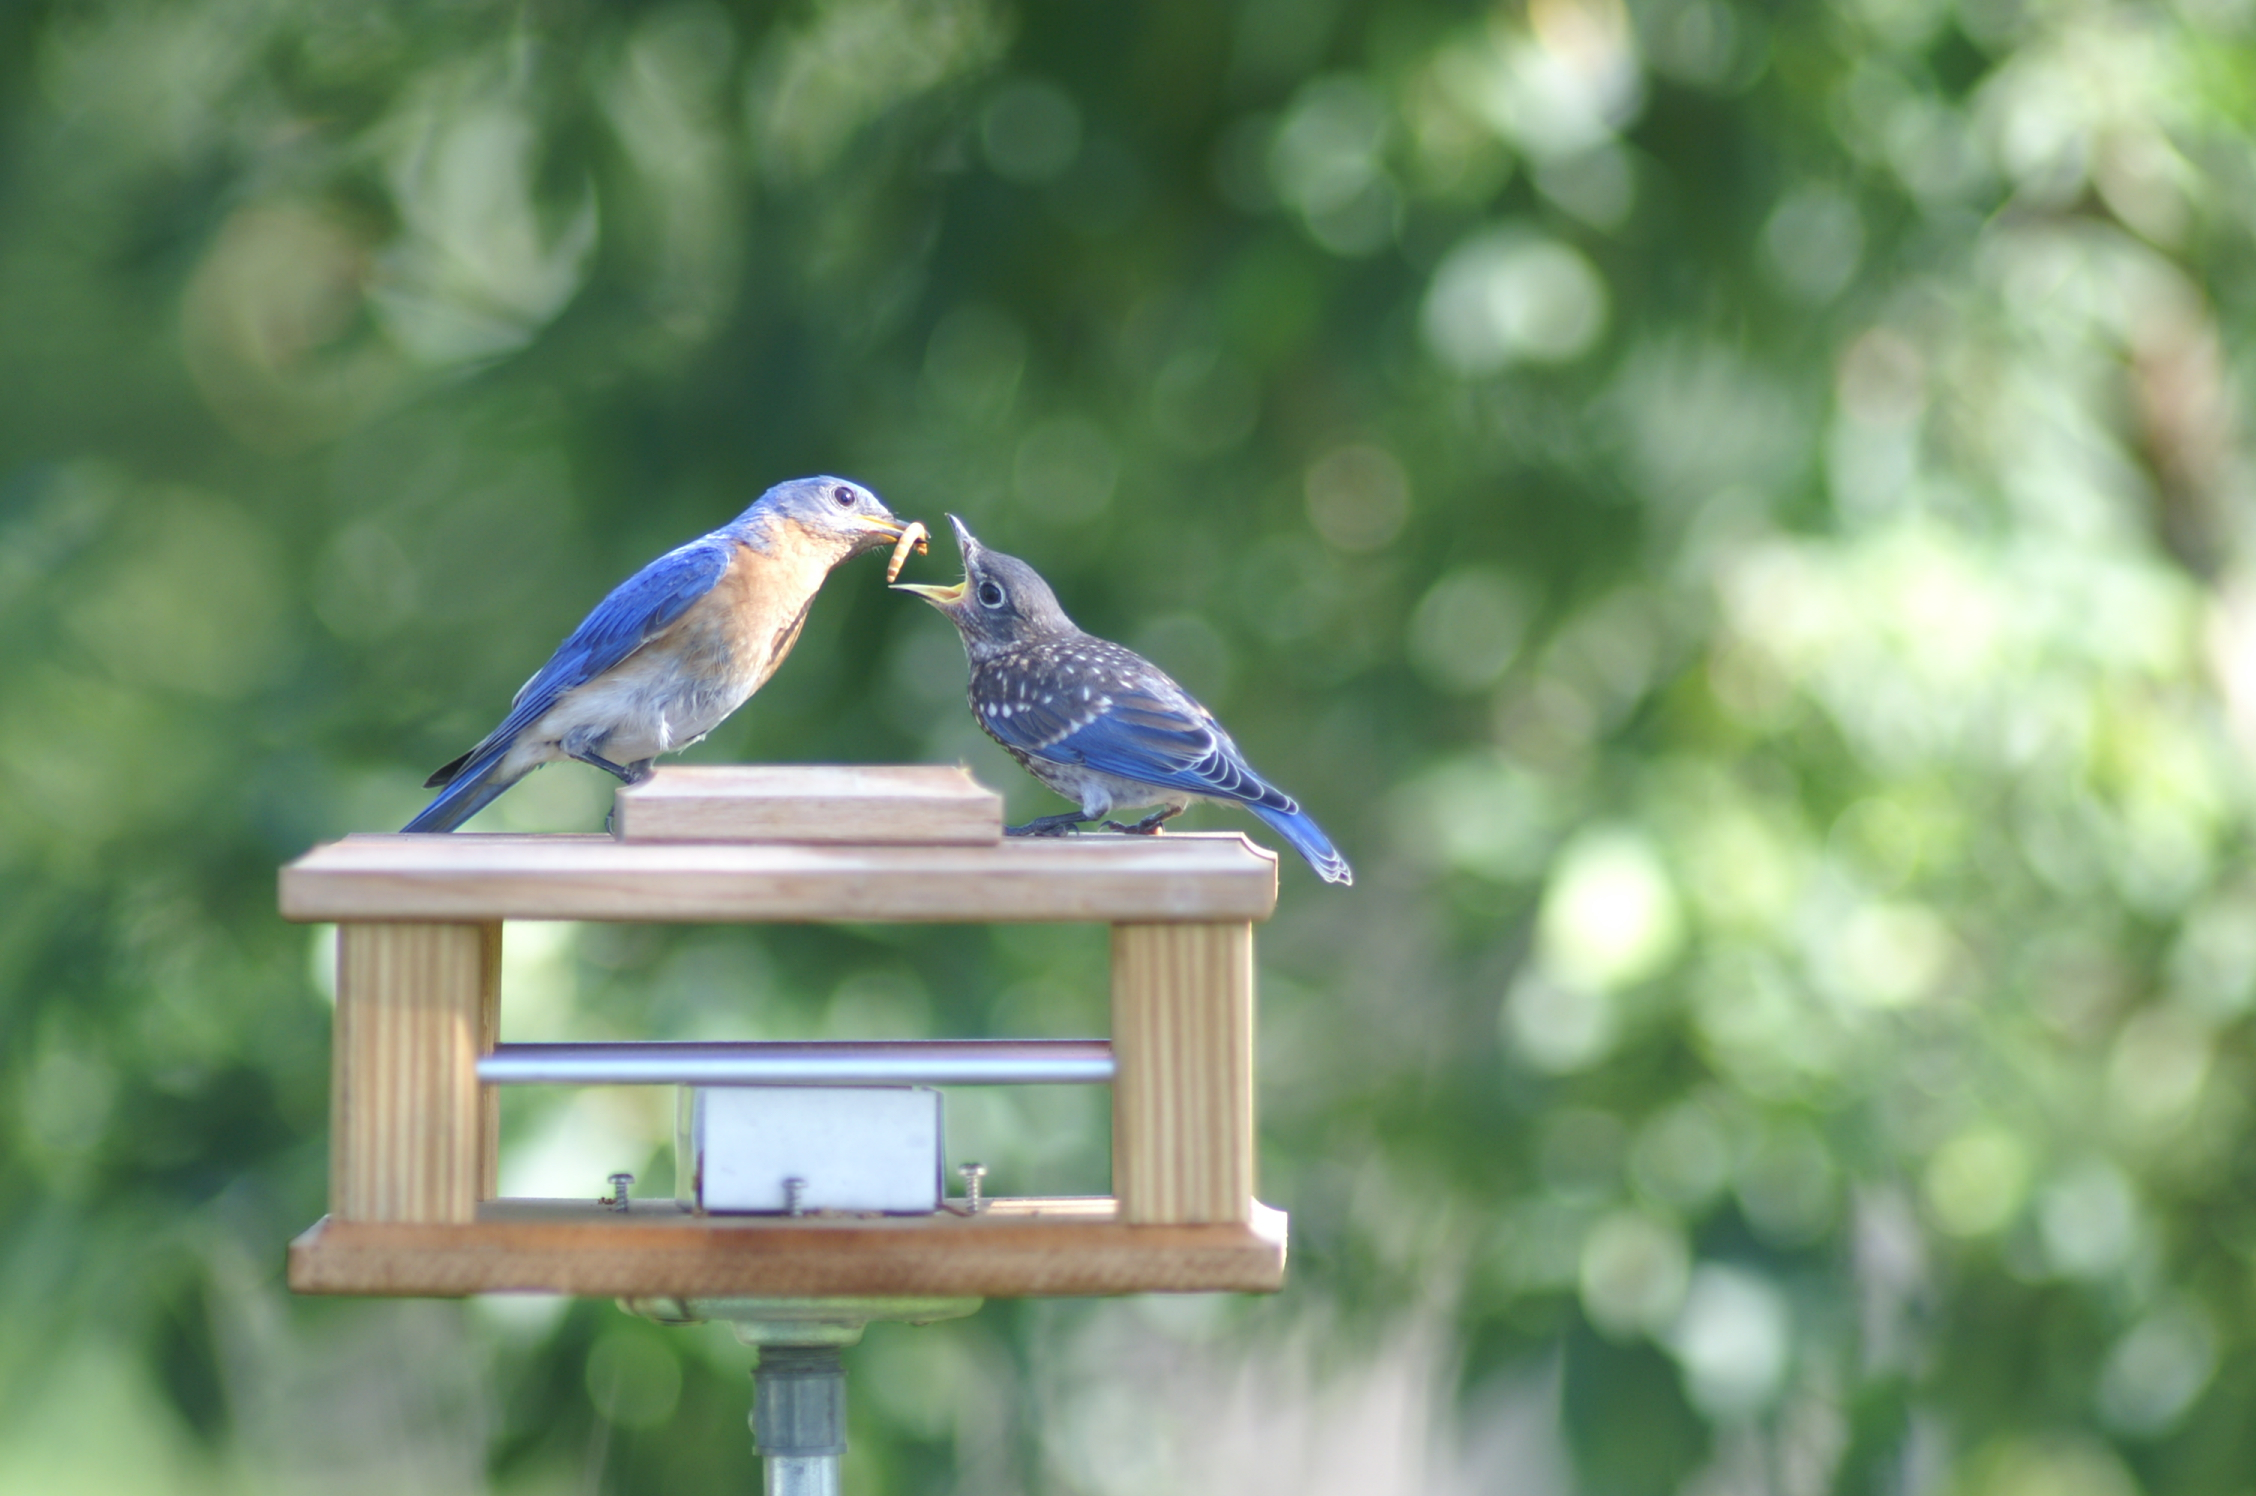 round of the feeder feed feeders wood ages styles popular thru year incredible and blue bird bluebird